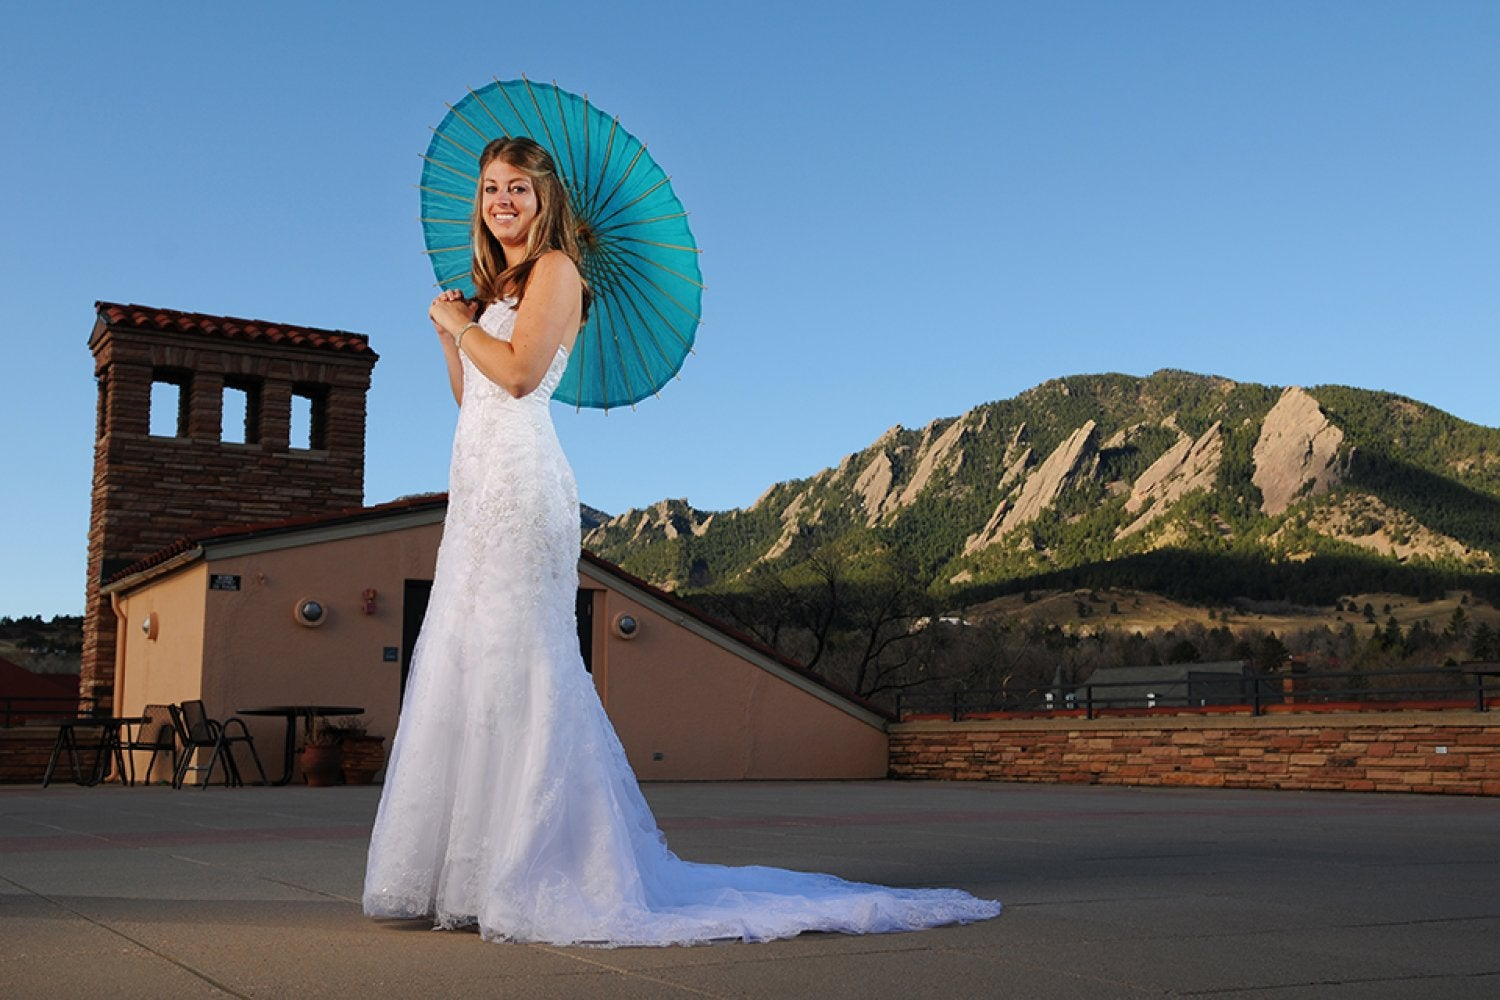 Bride on the Rooftop